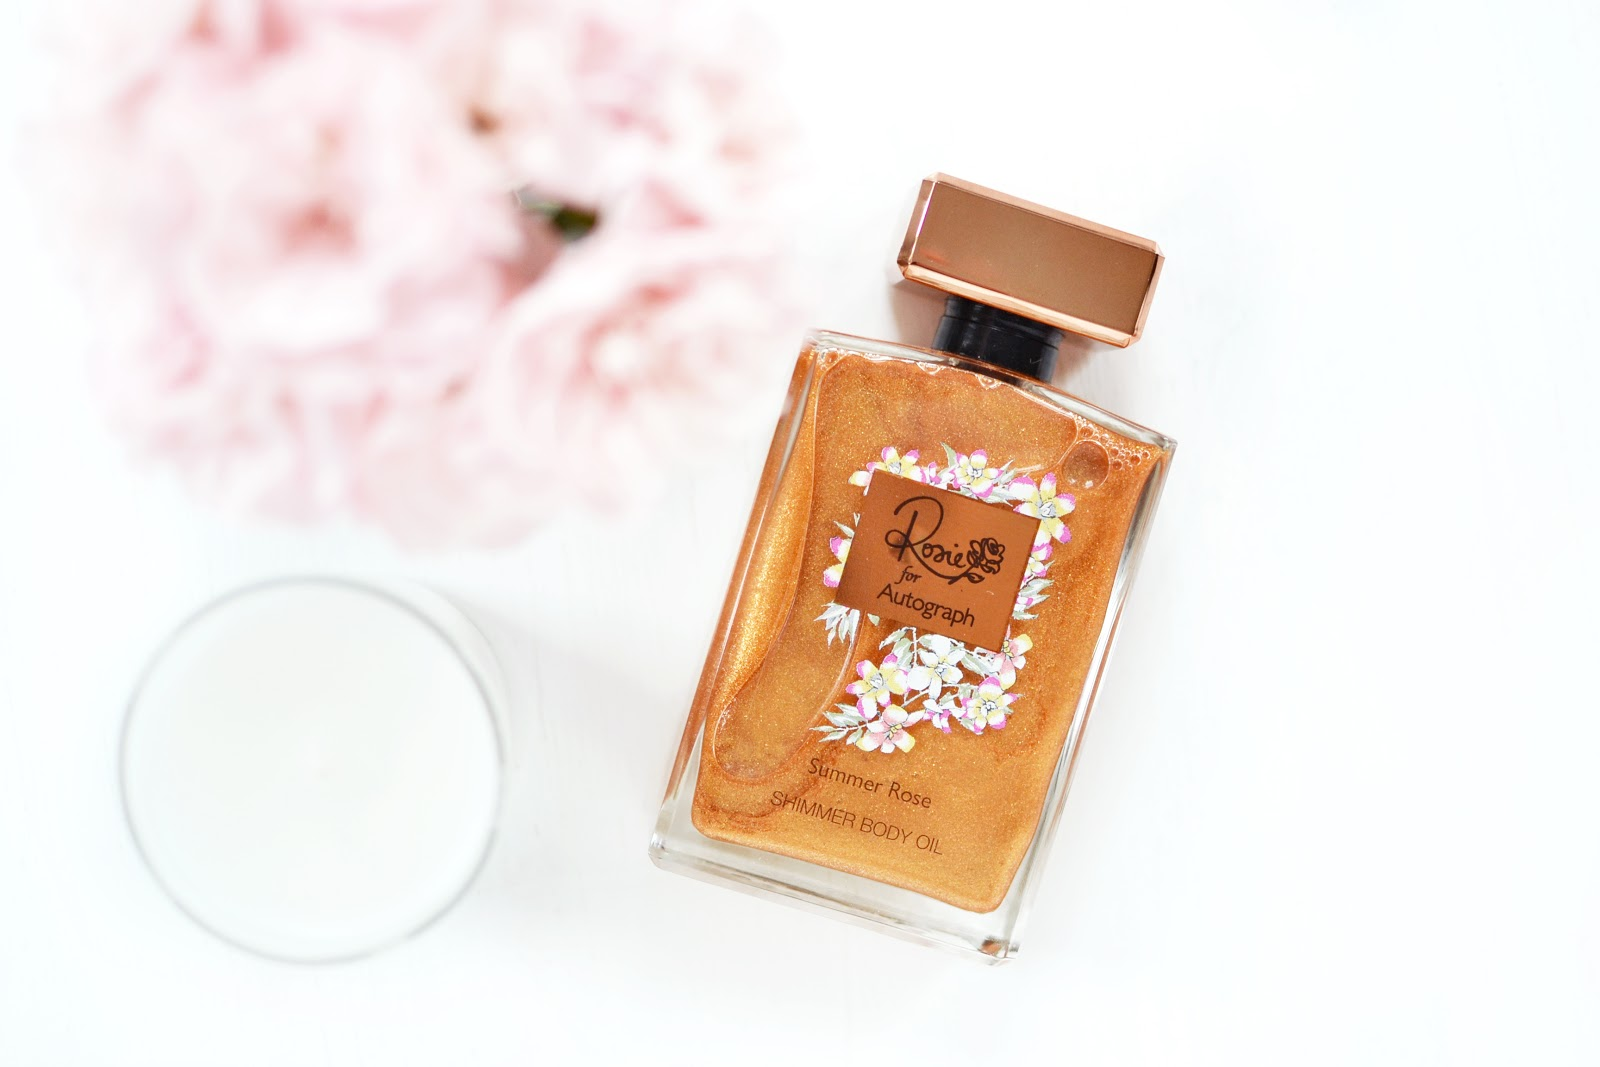 rosie for autograph shimmer body oil